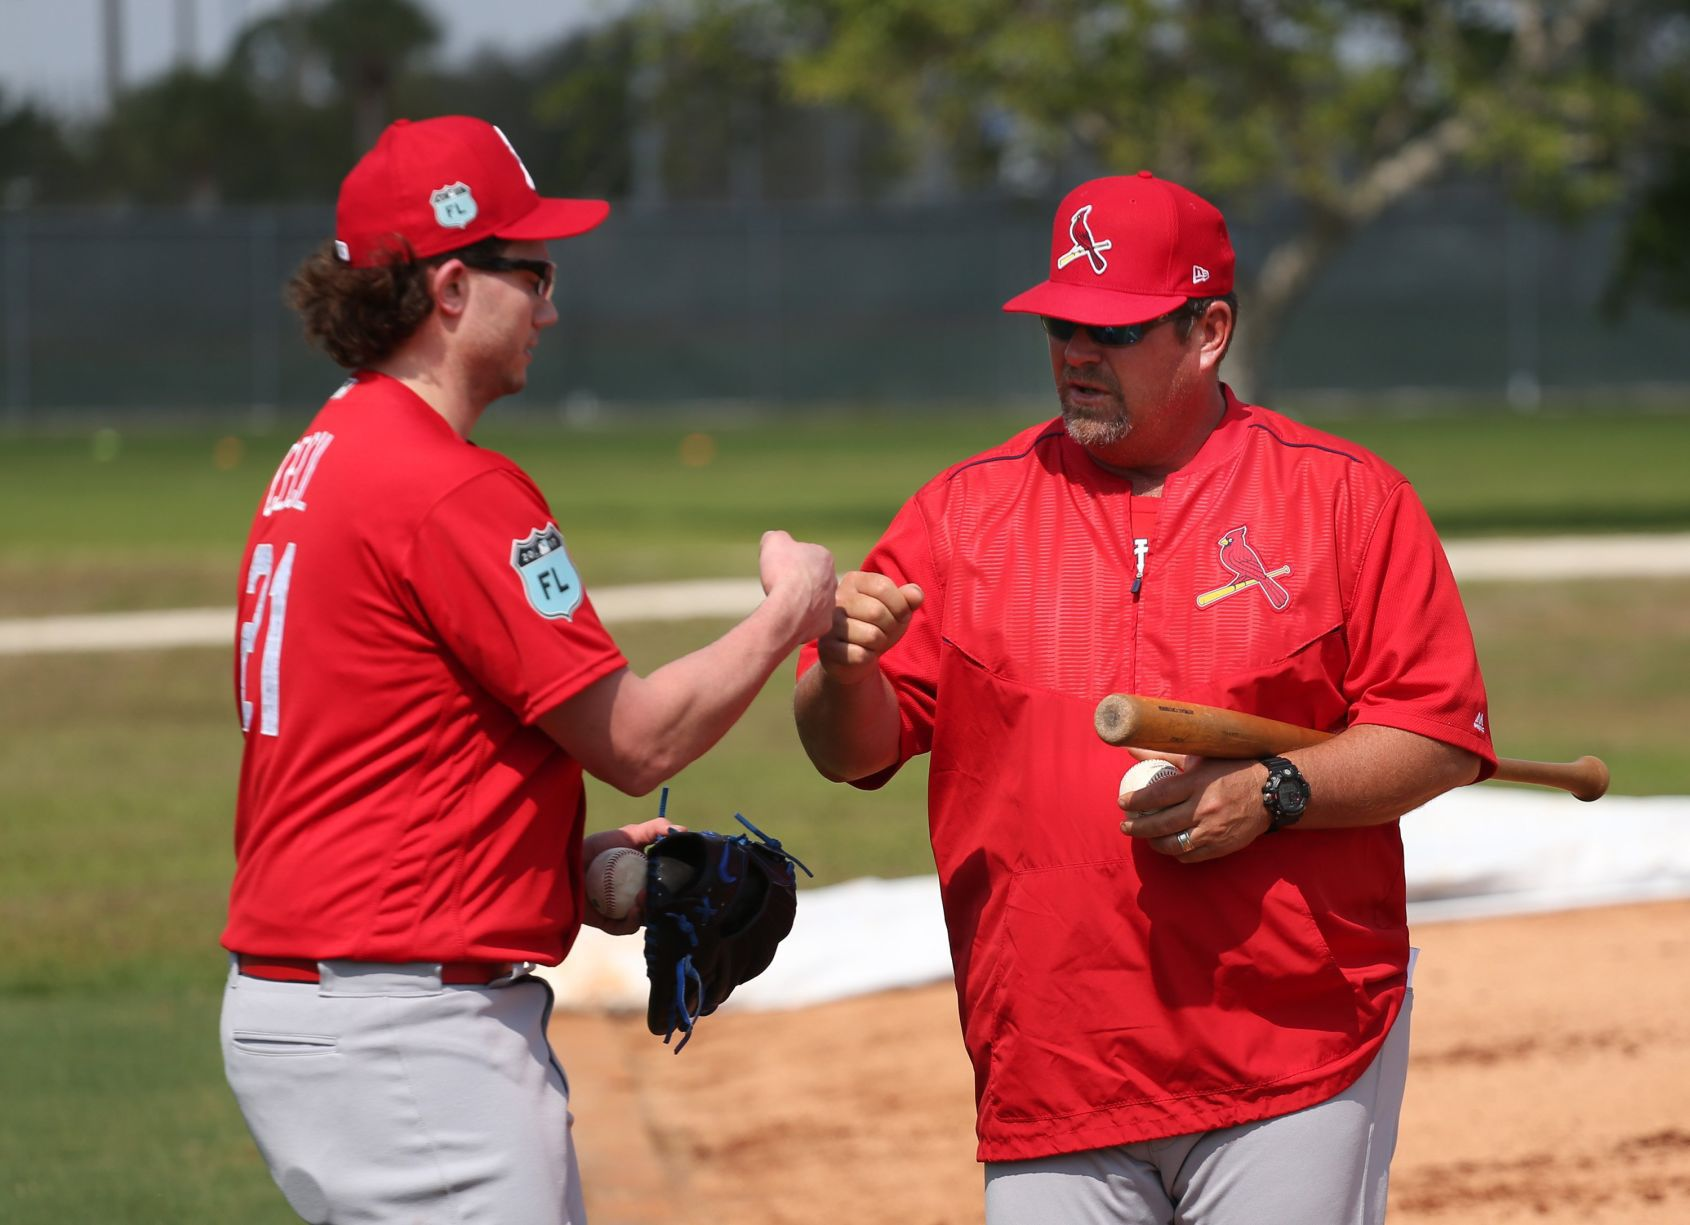 Derek Lilliquist won't return as Cardinals pitching coach